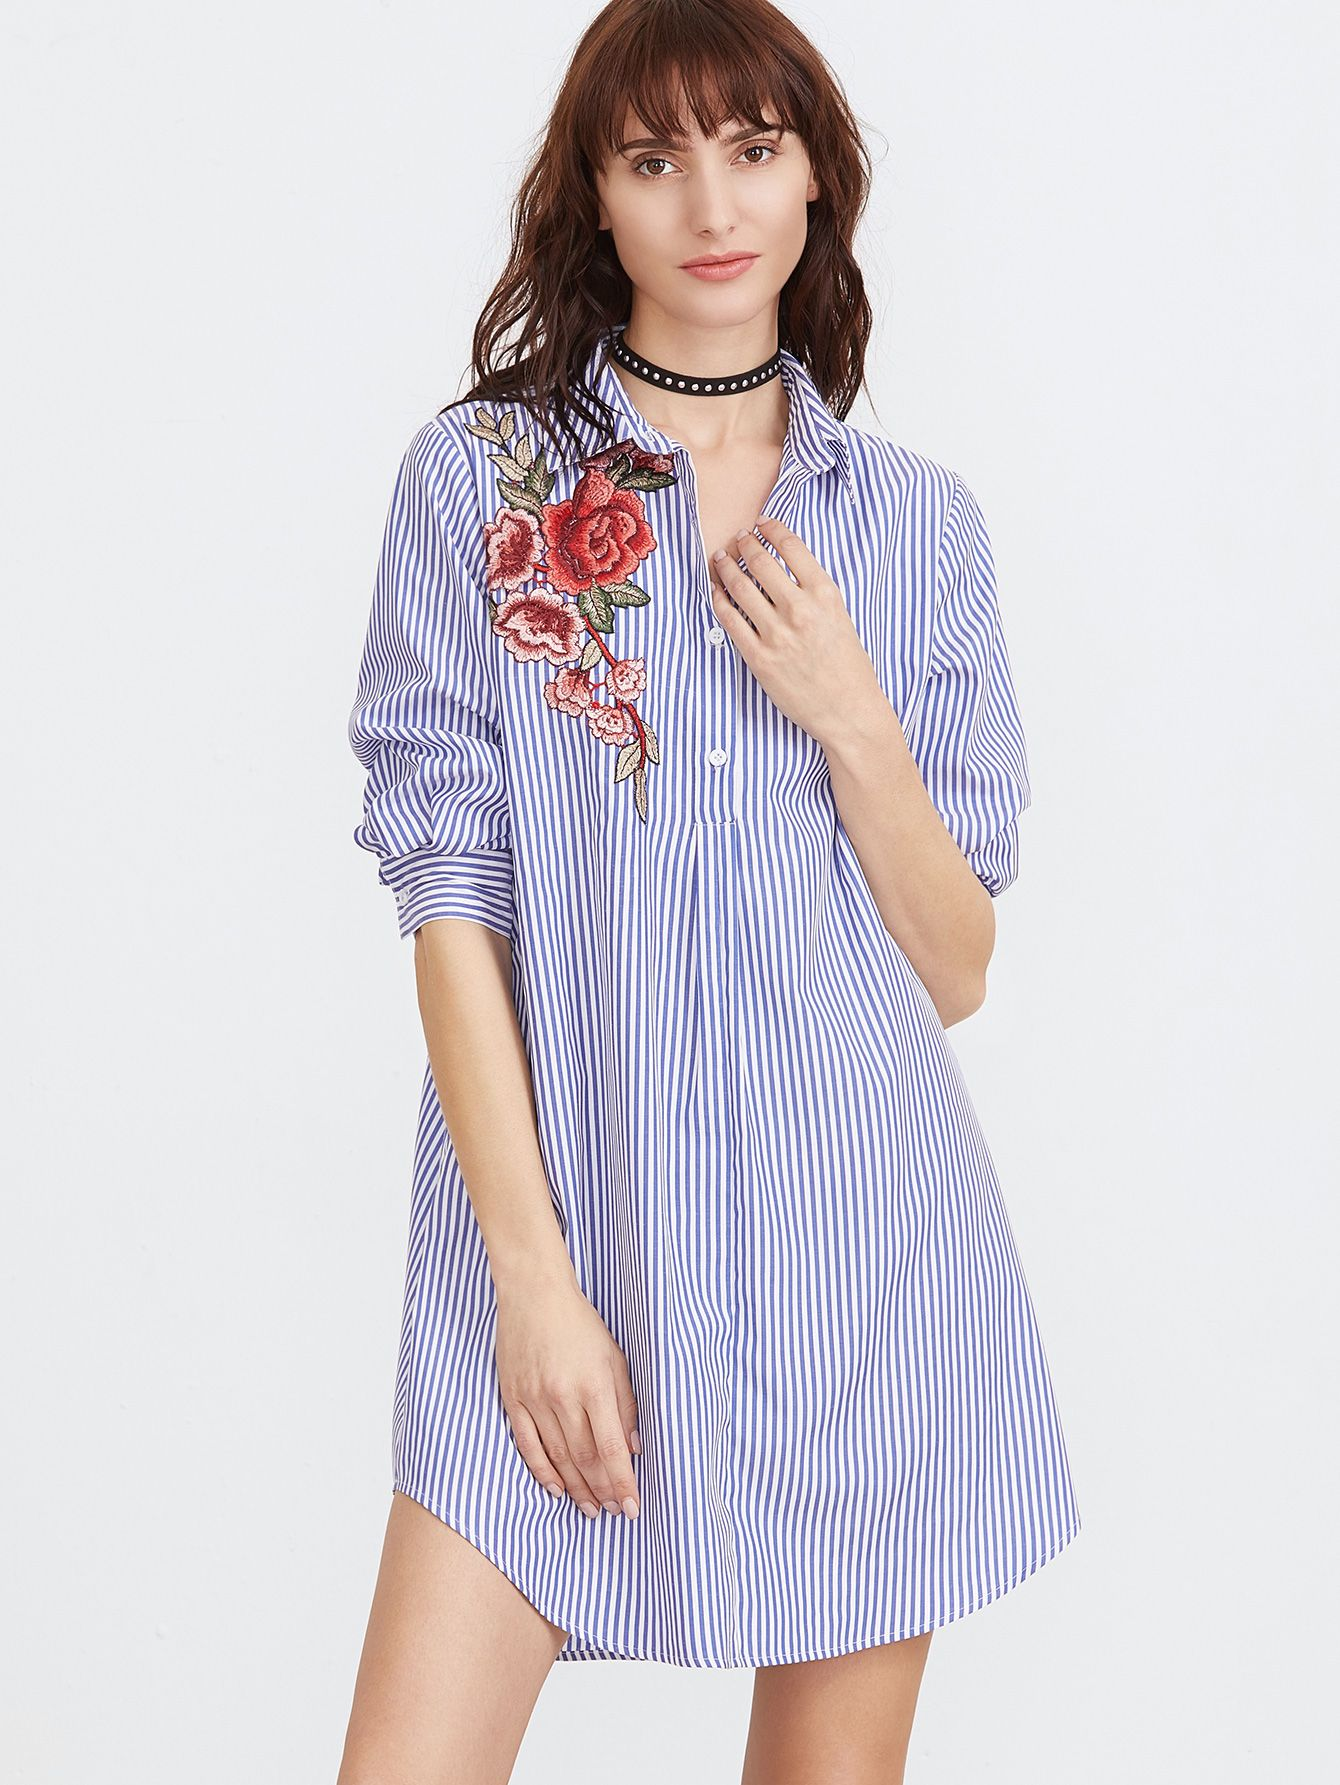 ff0ec6be19 Blue And White Striped Embroidered Rose Applique Shirt Dress -SheIn( Sheinside)